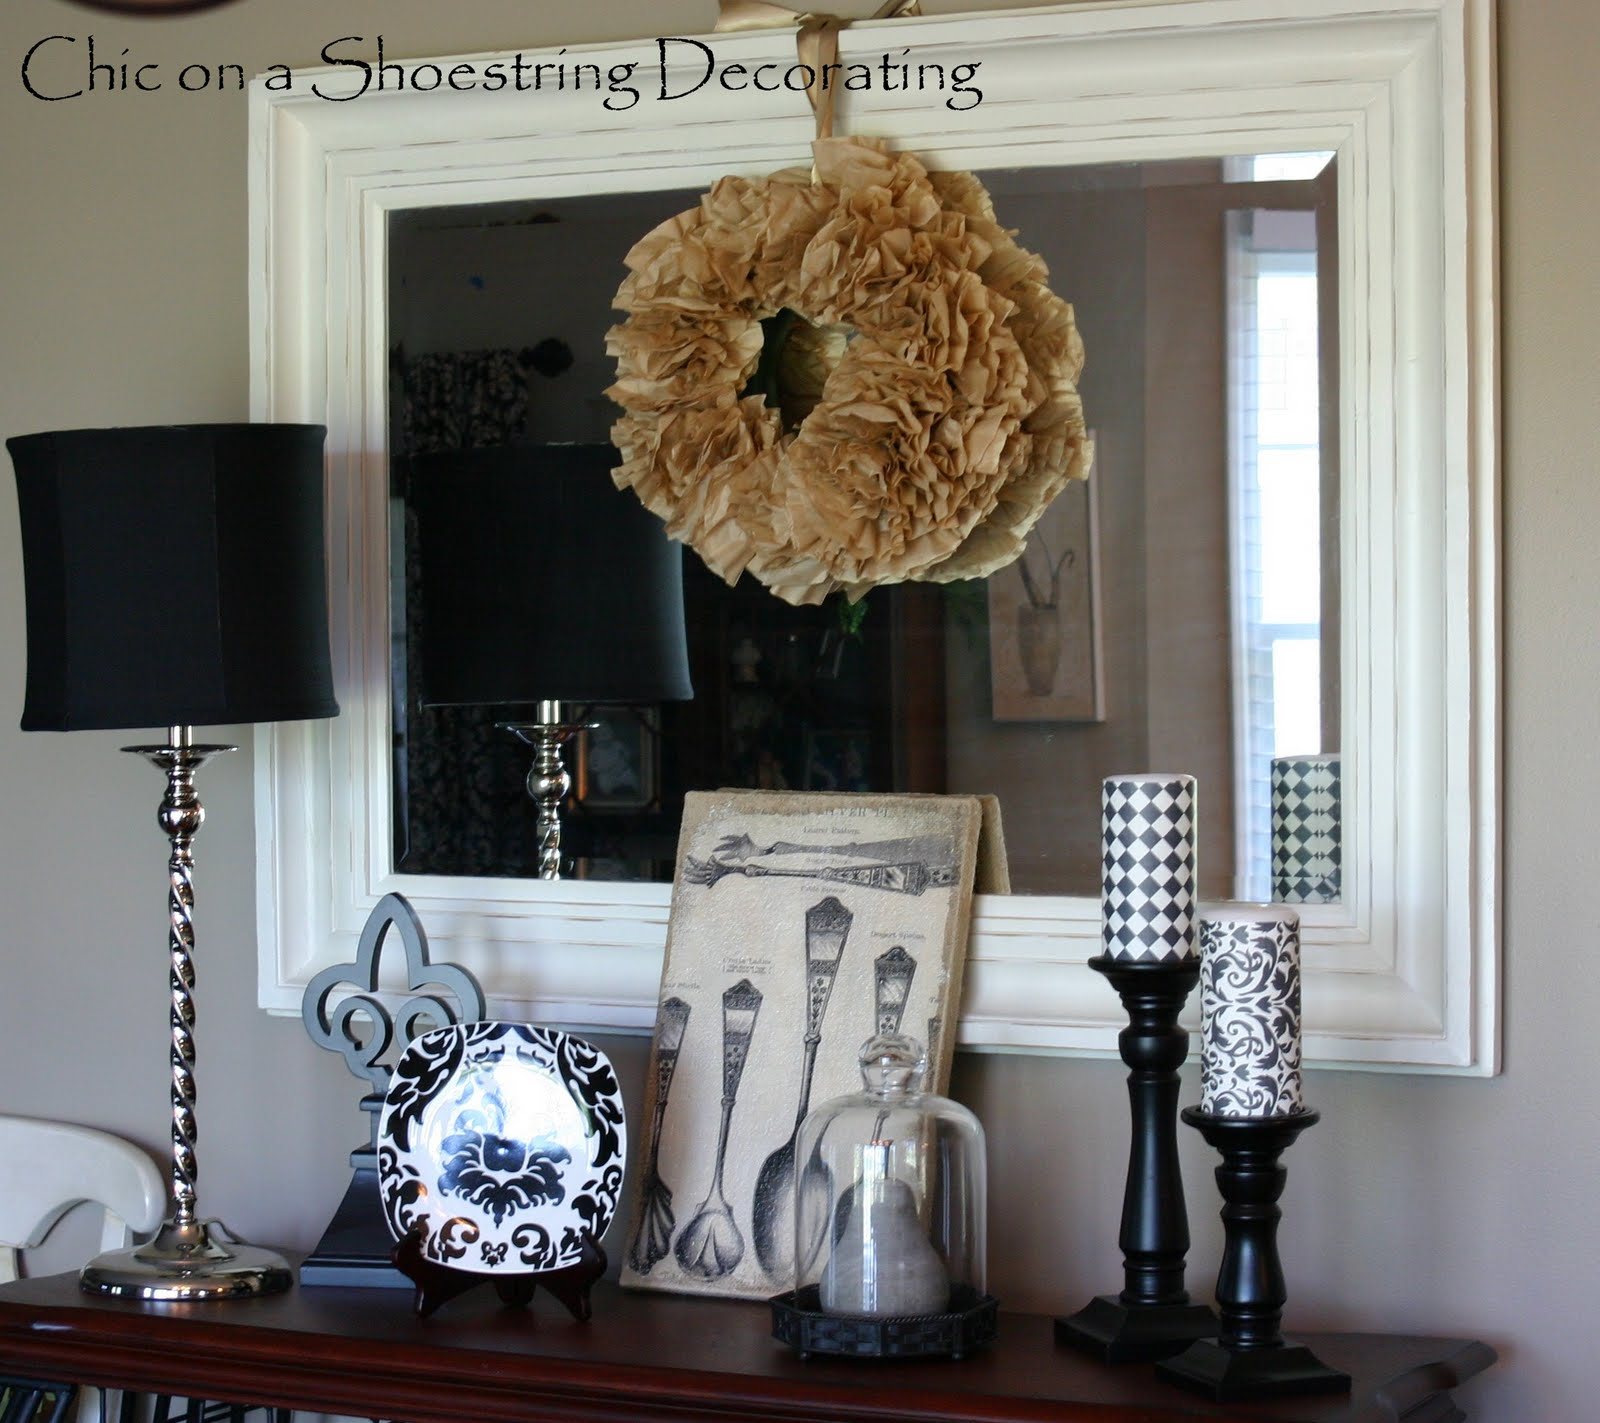 chic on a shoestring decorating black off white and